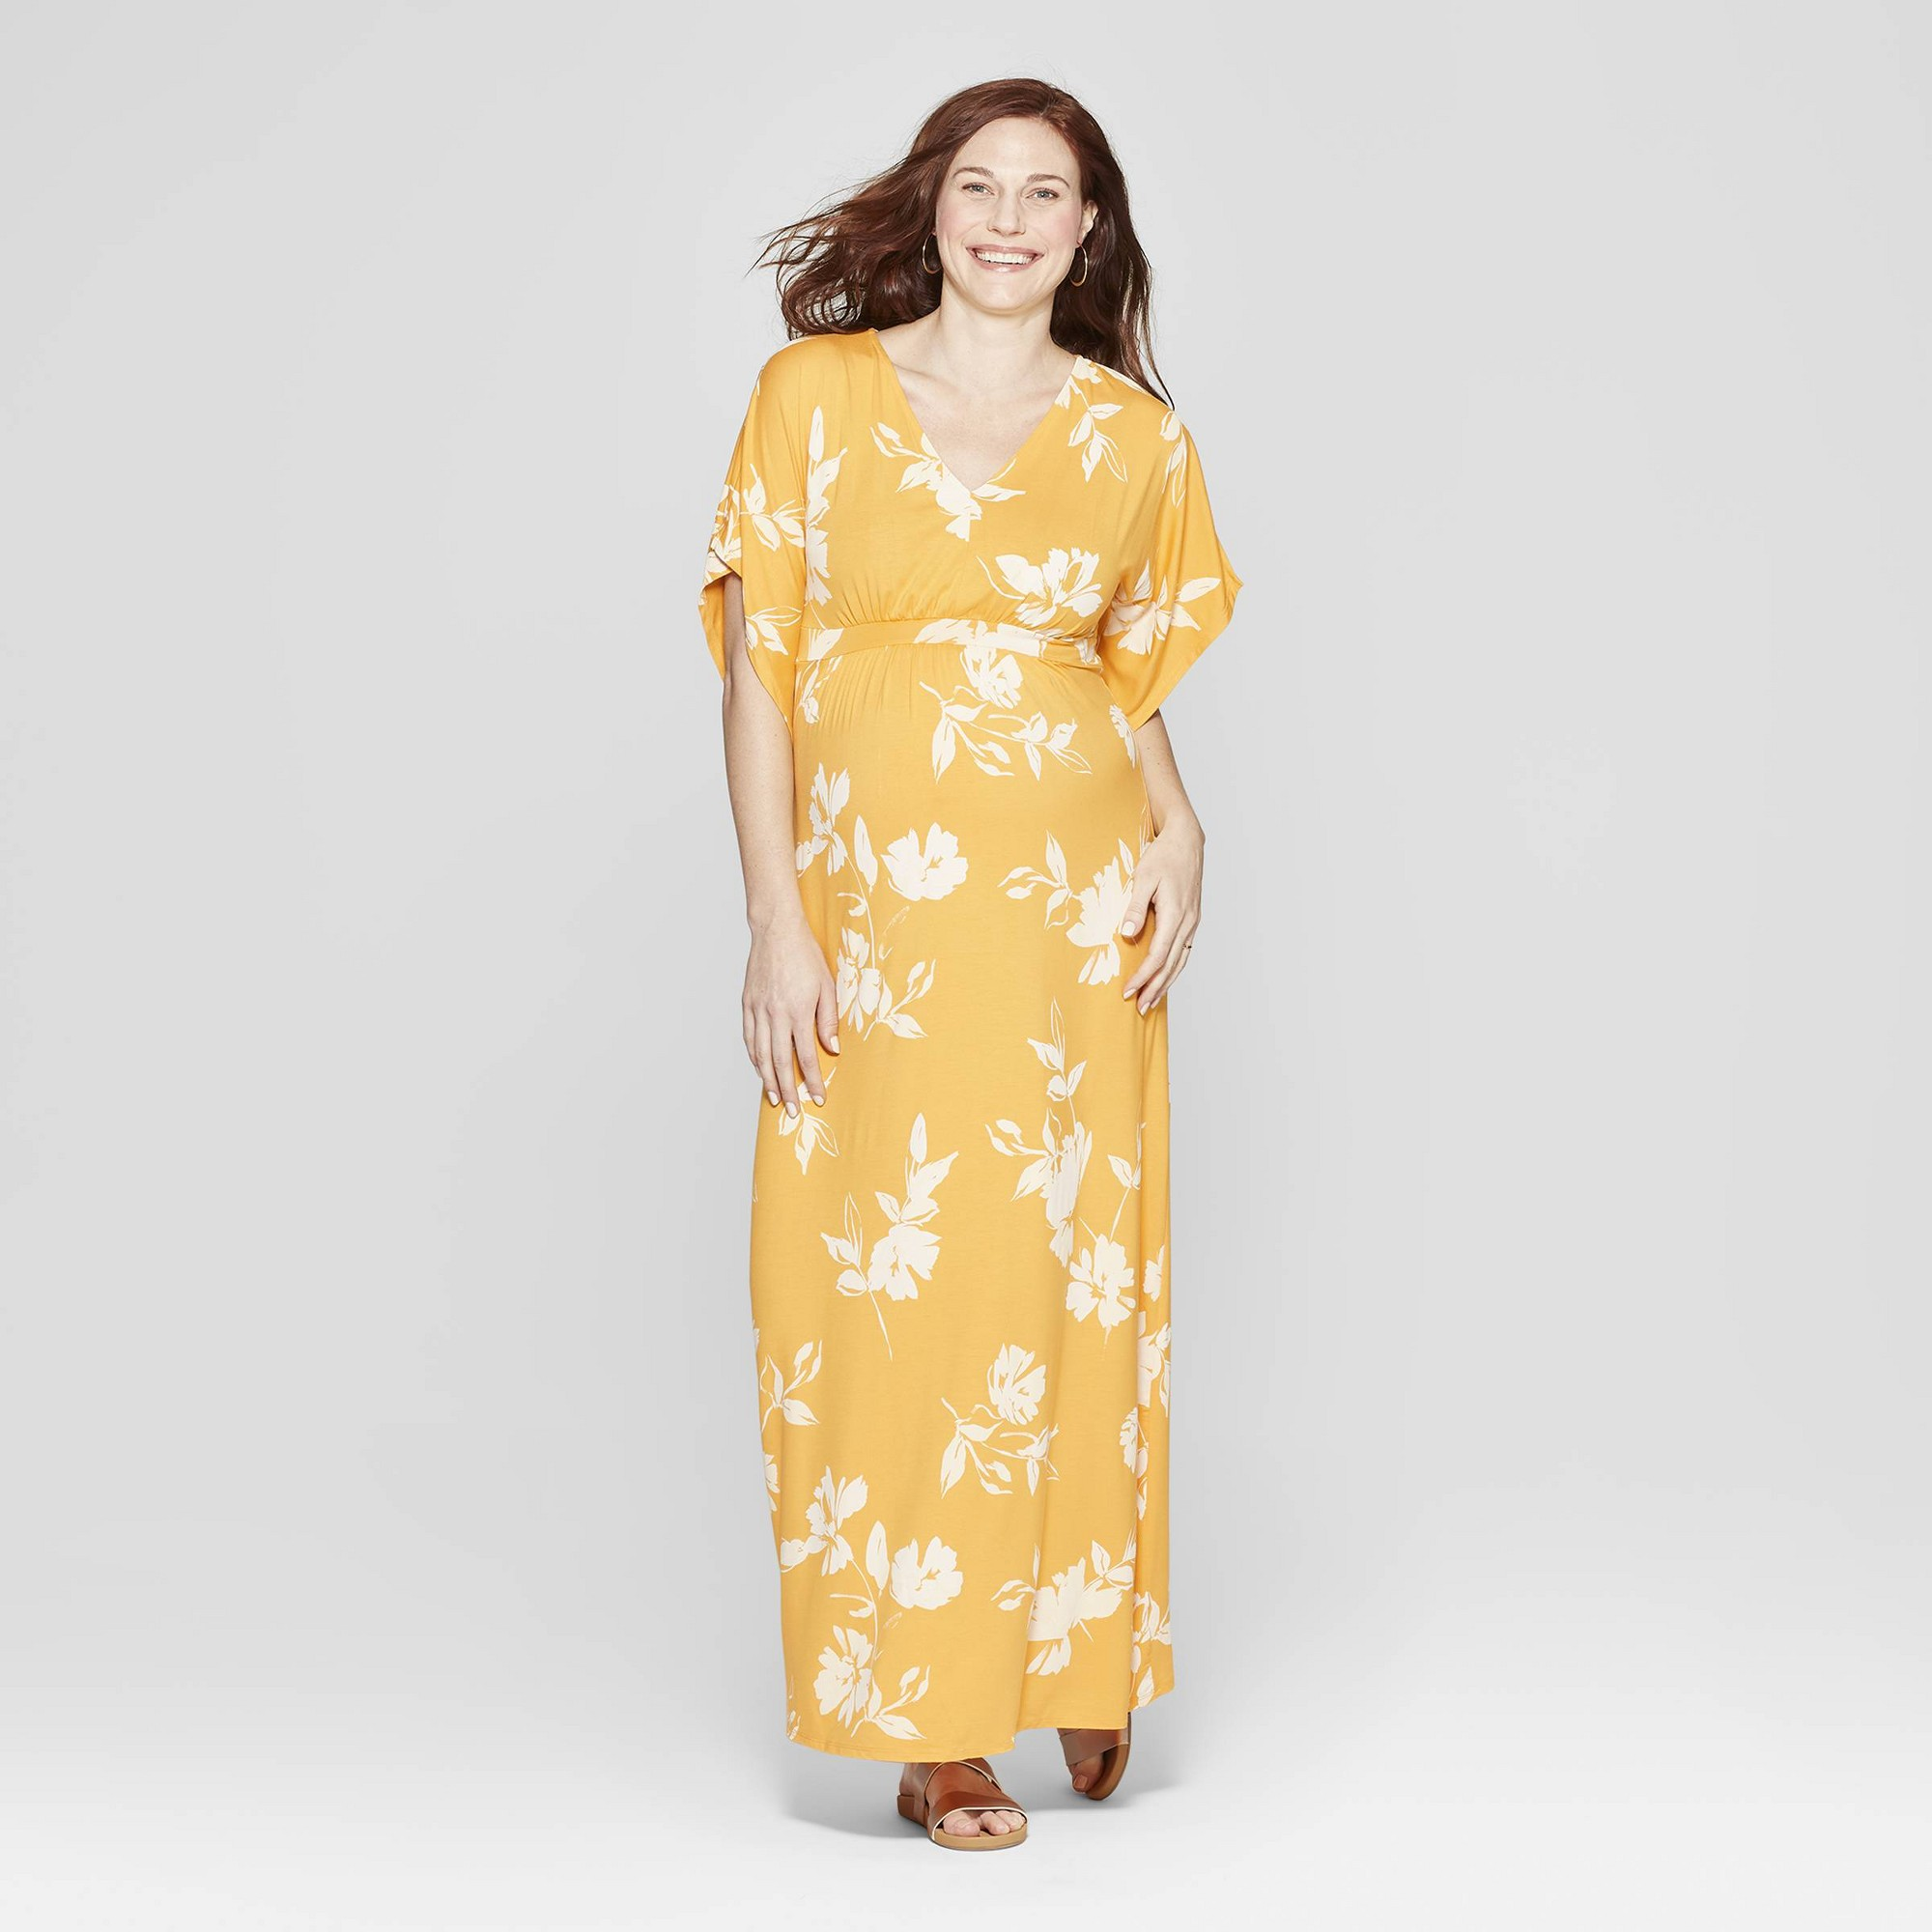 1af9be5e22997 Maternity Floral Print Kimono Short Sleeve Maxi Dress - Isabel Maternity by  Ingrid & Isabel Yellow M, Infant Girl's